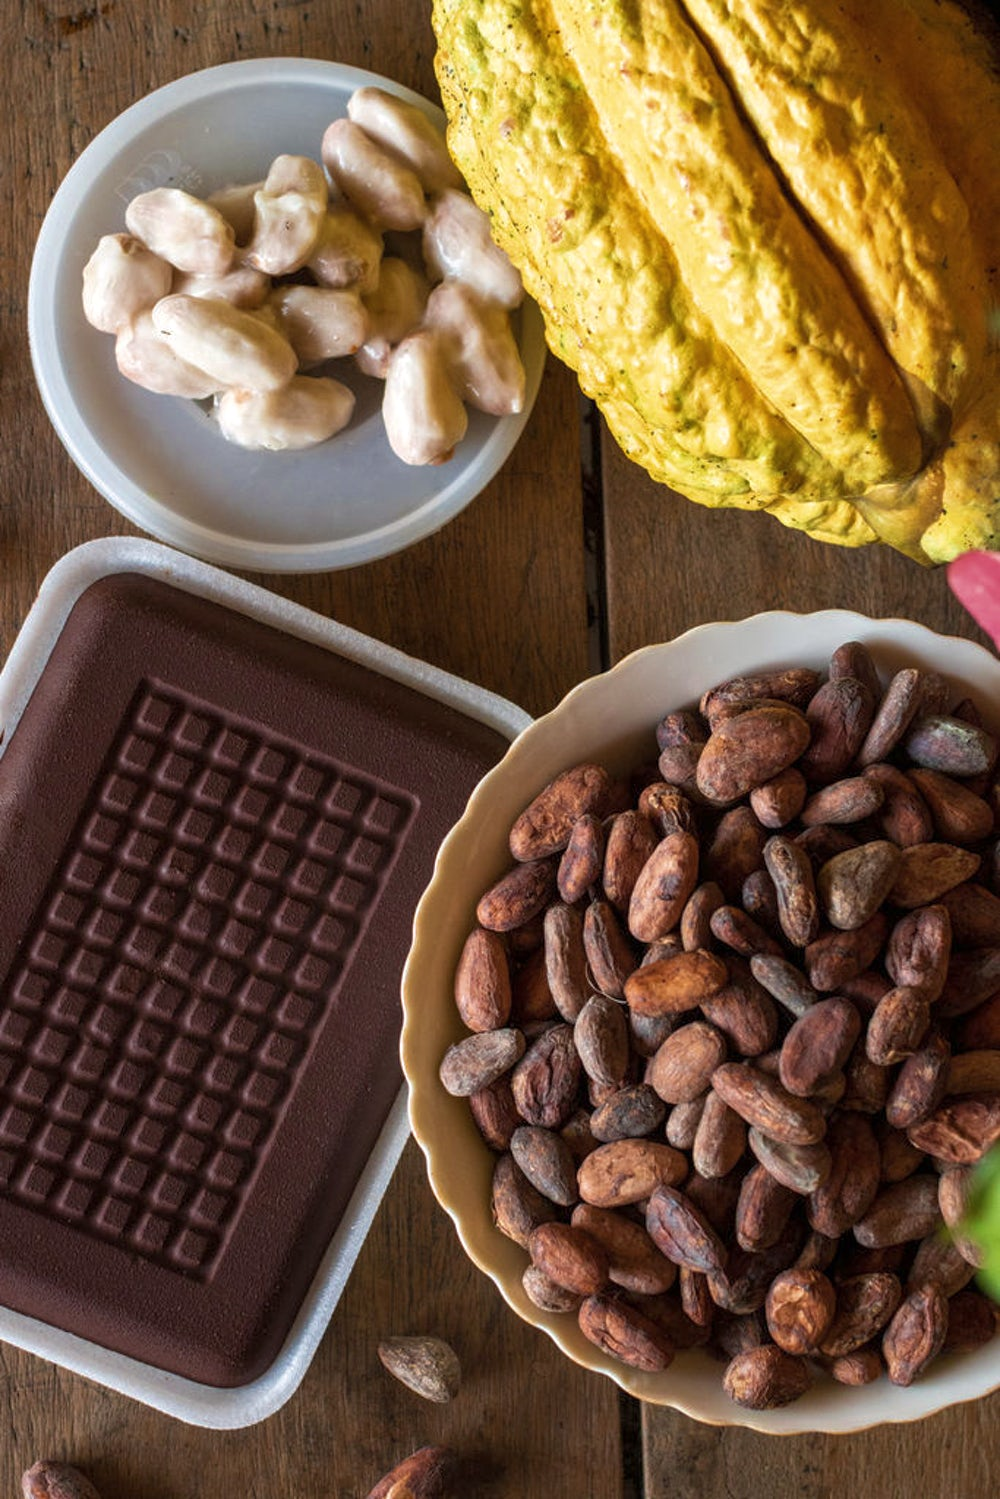 A yellow cacao pod, cacao beans covered in white fruit, roasted cacao beans and a finished chocolate bar gathered on a wood table.